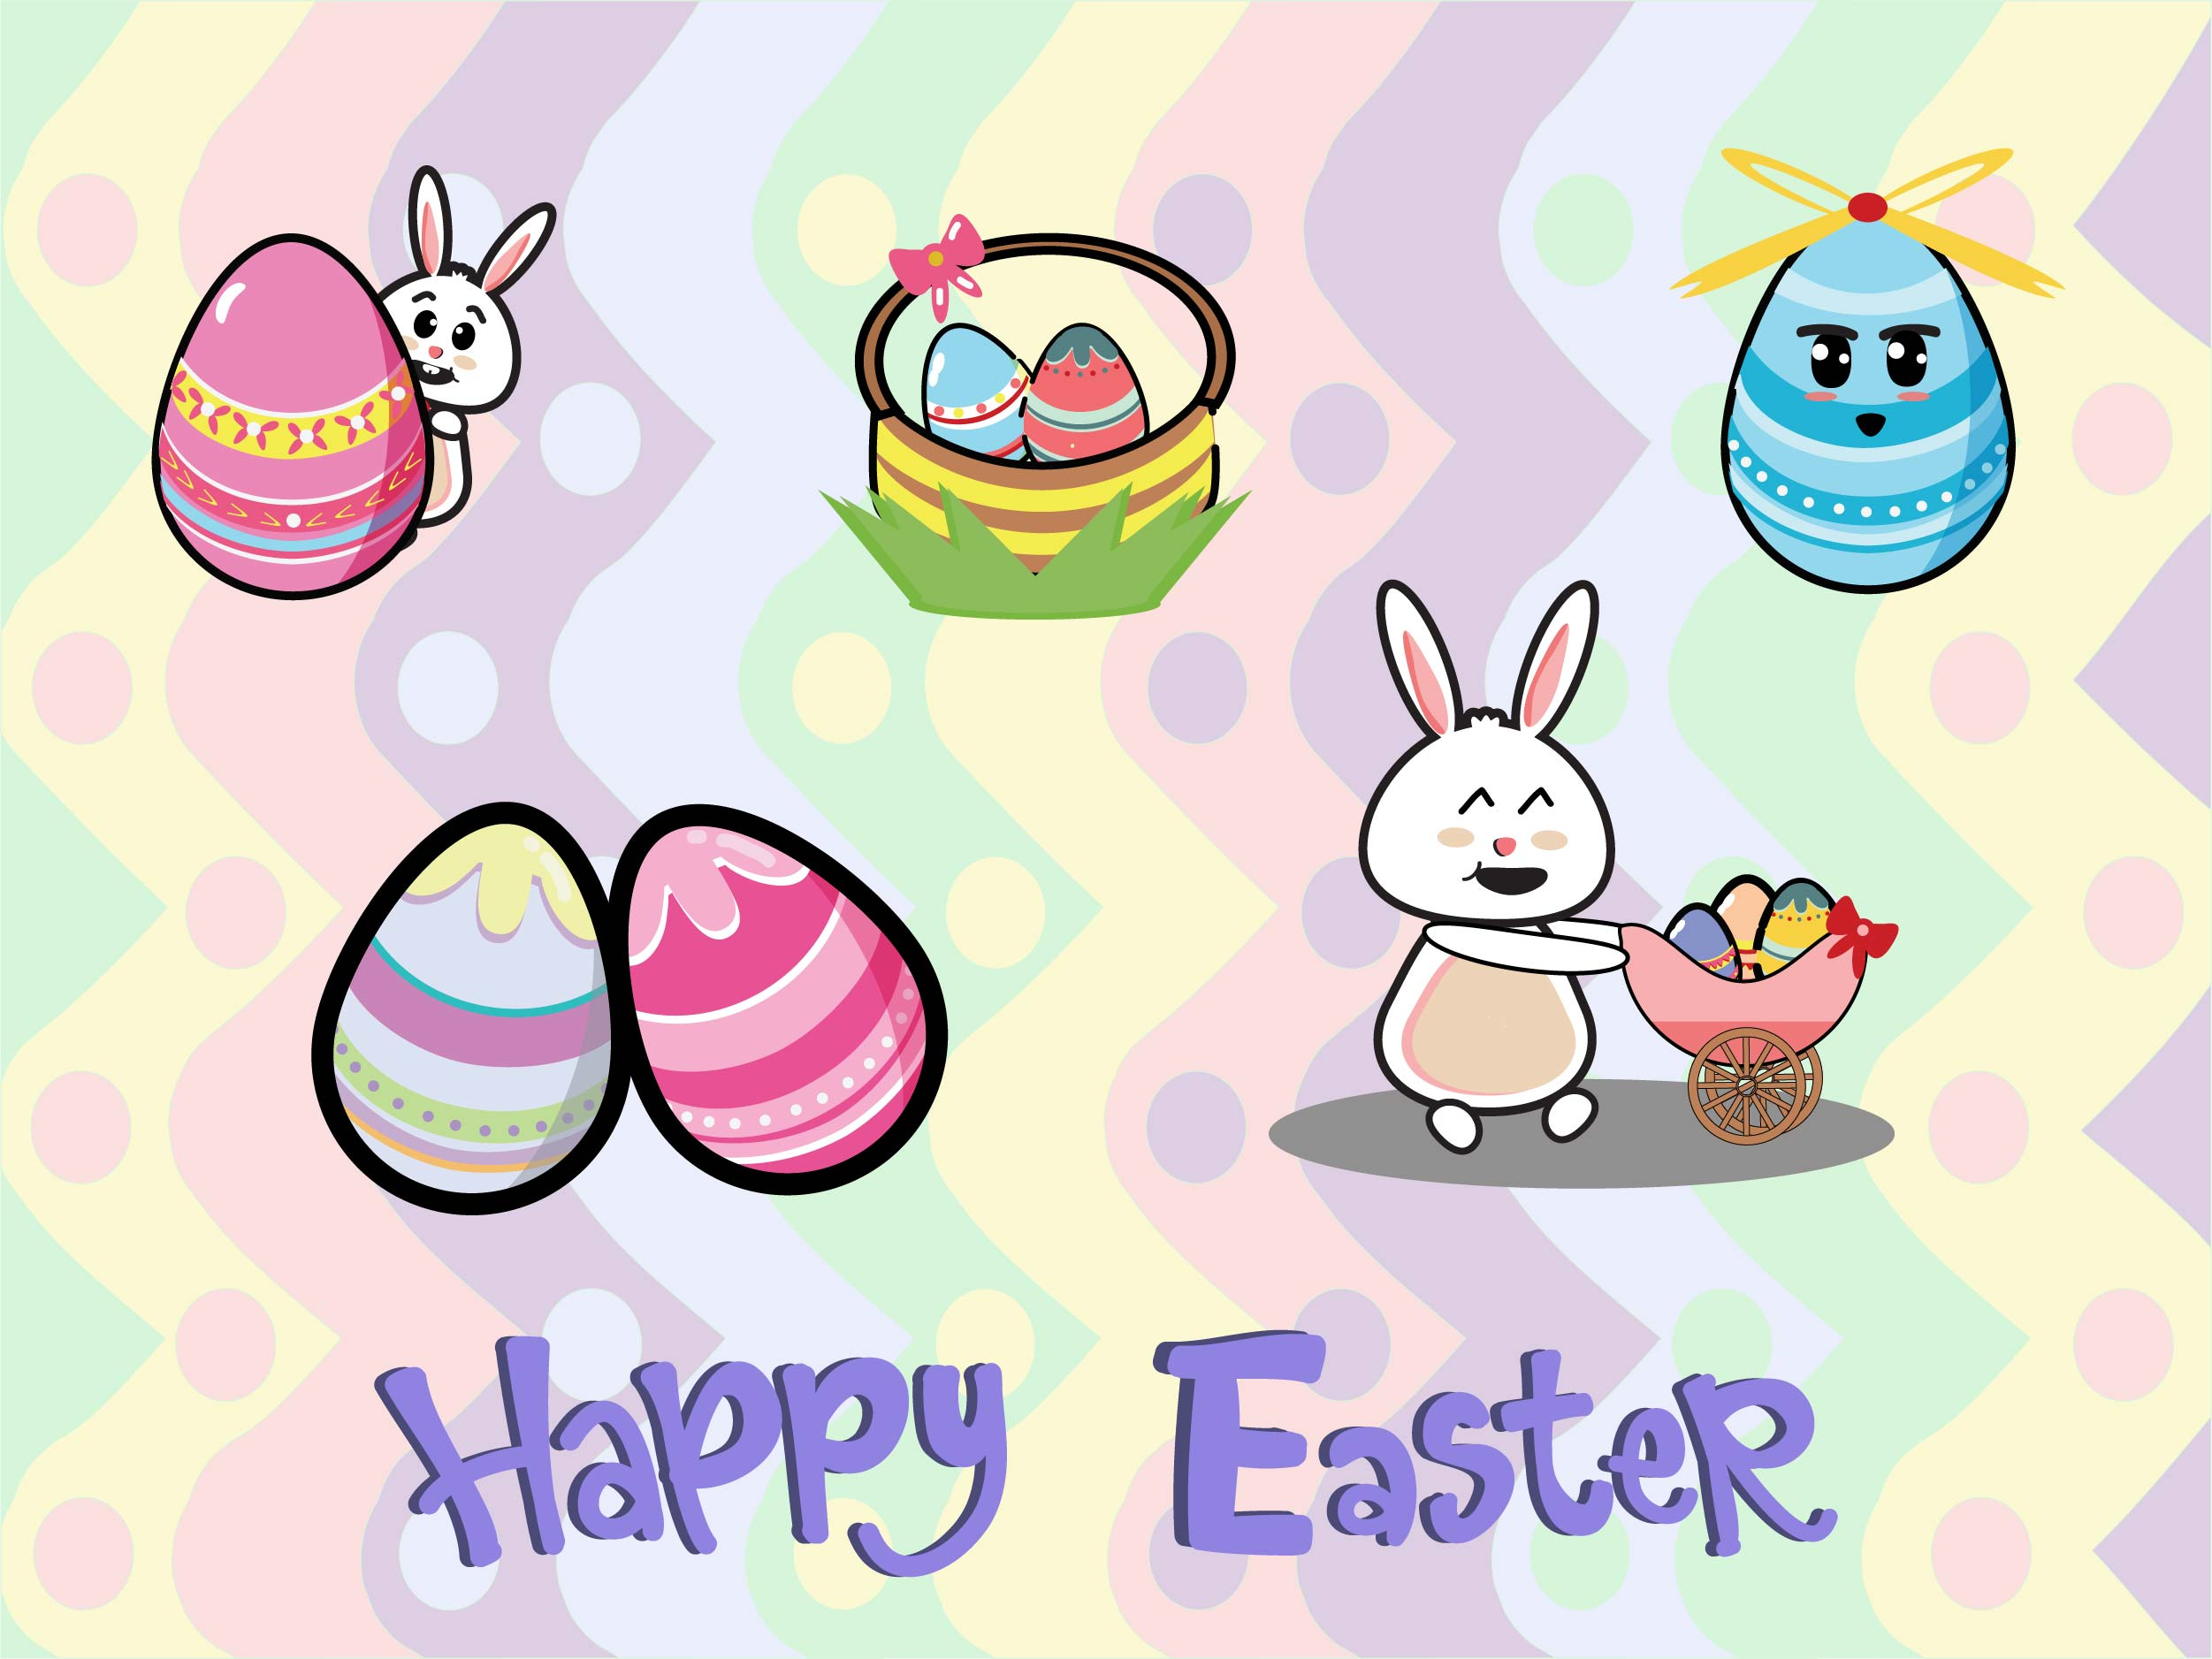 Download Free Easter Bundle Graphic By Purplebubble Creative Fabrica for Cricut Explore, Silhouette and other cutting machines.